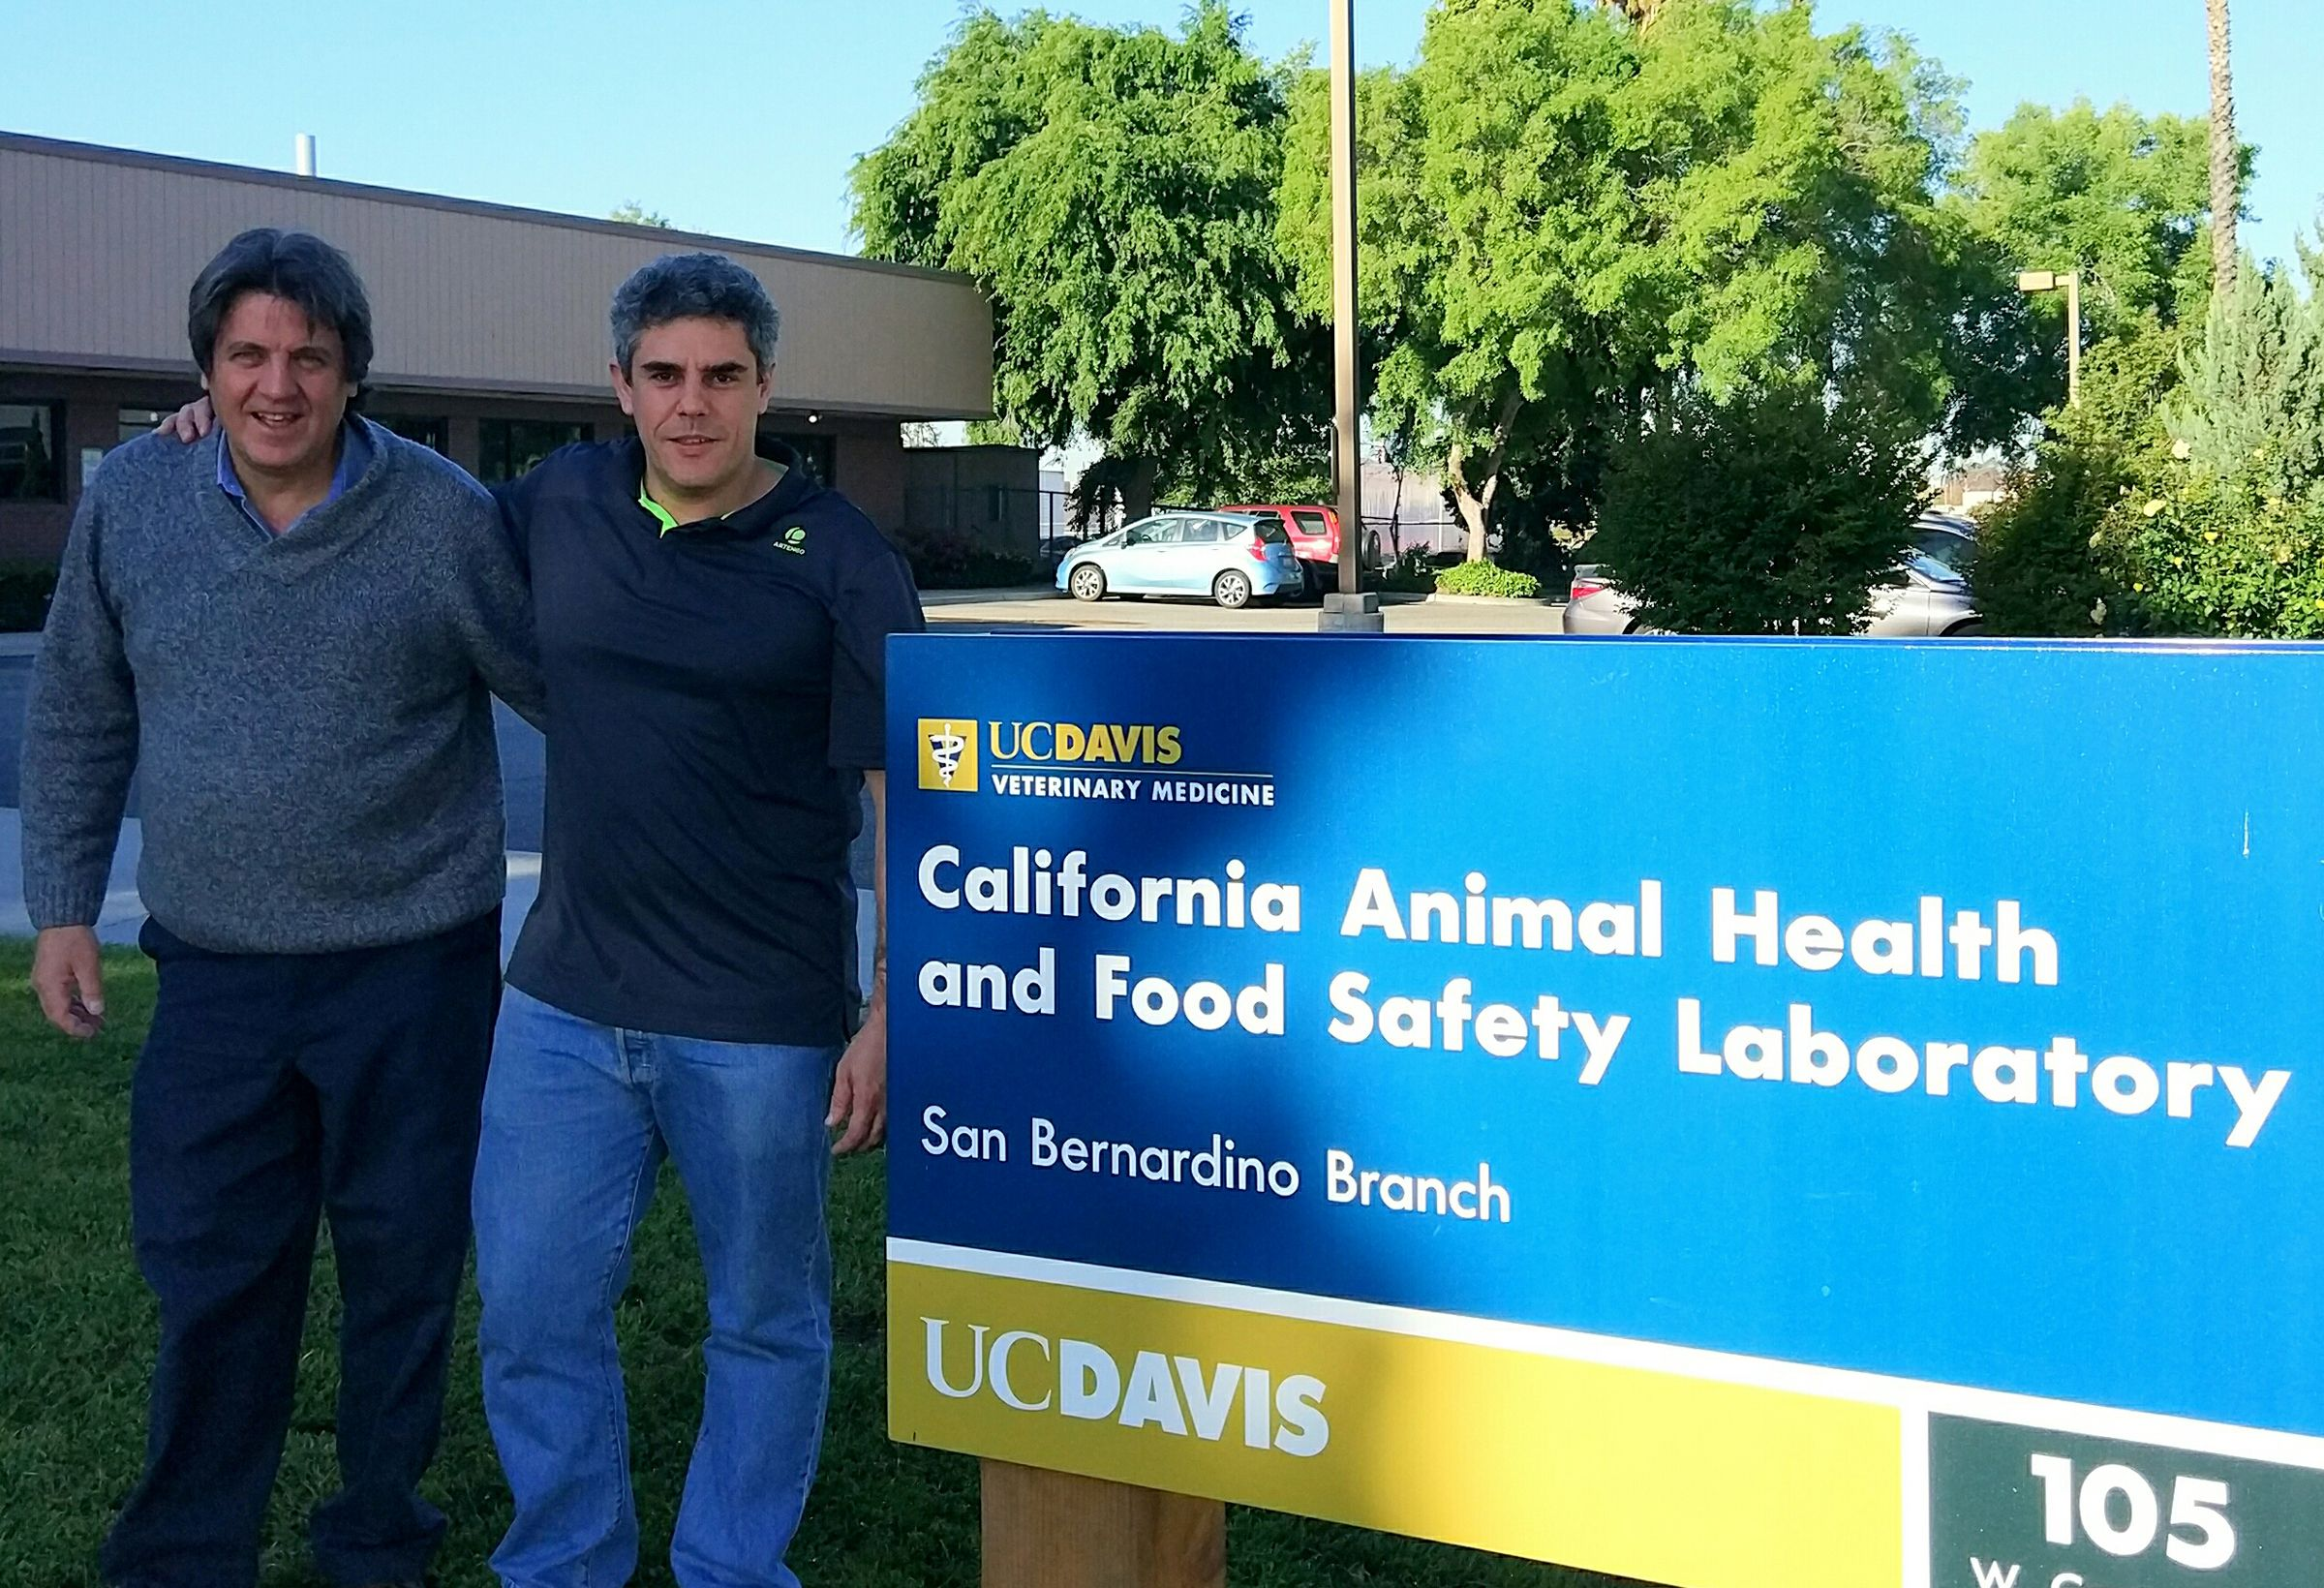 El doctor Uzal, de UC Davis, y el profesor Ortega, del CEU-UCH, en el California Animal Health and Food Safety Laboratory.